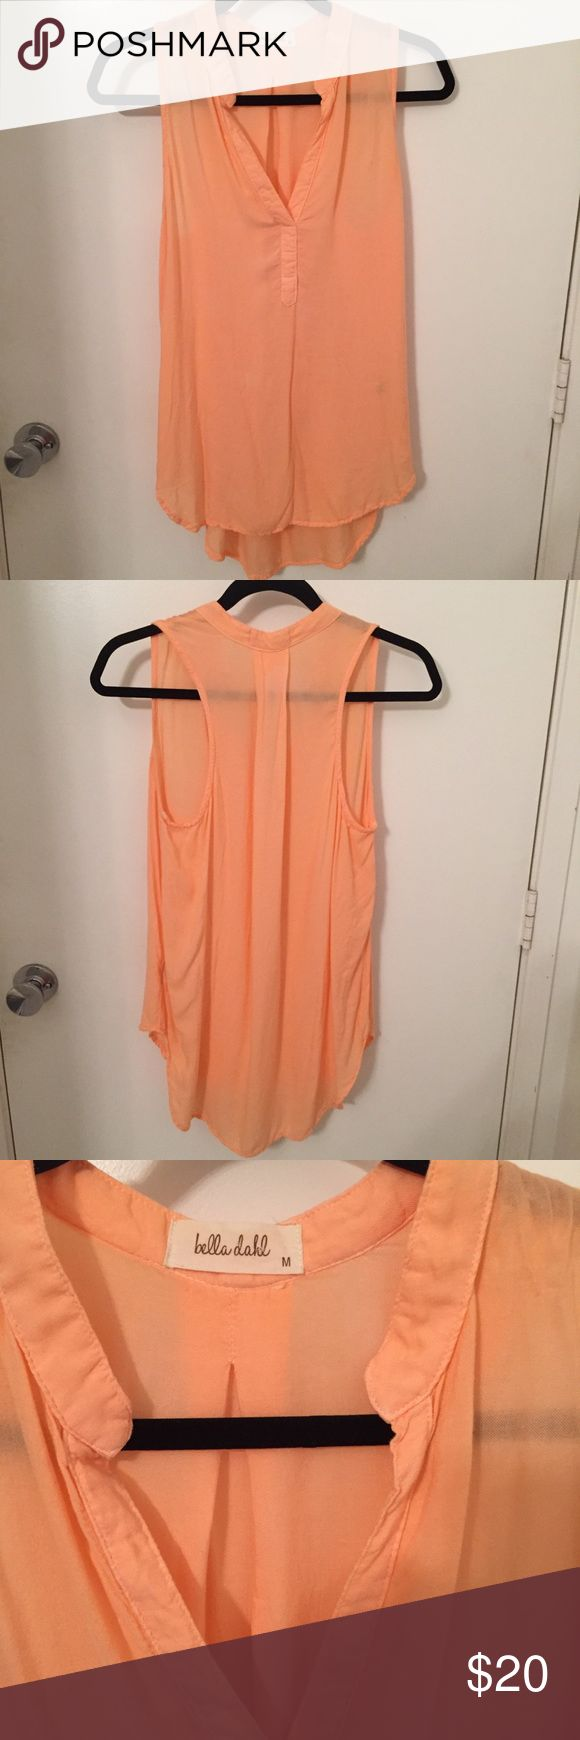 Bella Dahl Nordstrom's sleeveless top sheer peachM Bella Dahl Nordstrom's  peach colored rayon button soft tunic with slight high low fit. Beautiful top and very light and sheer. No rips or stains. Minimal a signs of wear. Ready to pair with a great pair of jeans or loose fit Bella Dahl pants. Size M. Stock photo shows style in different color. Bella Dahl Tops